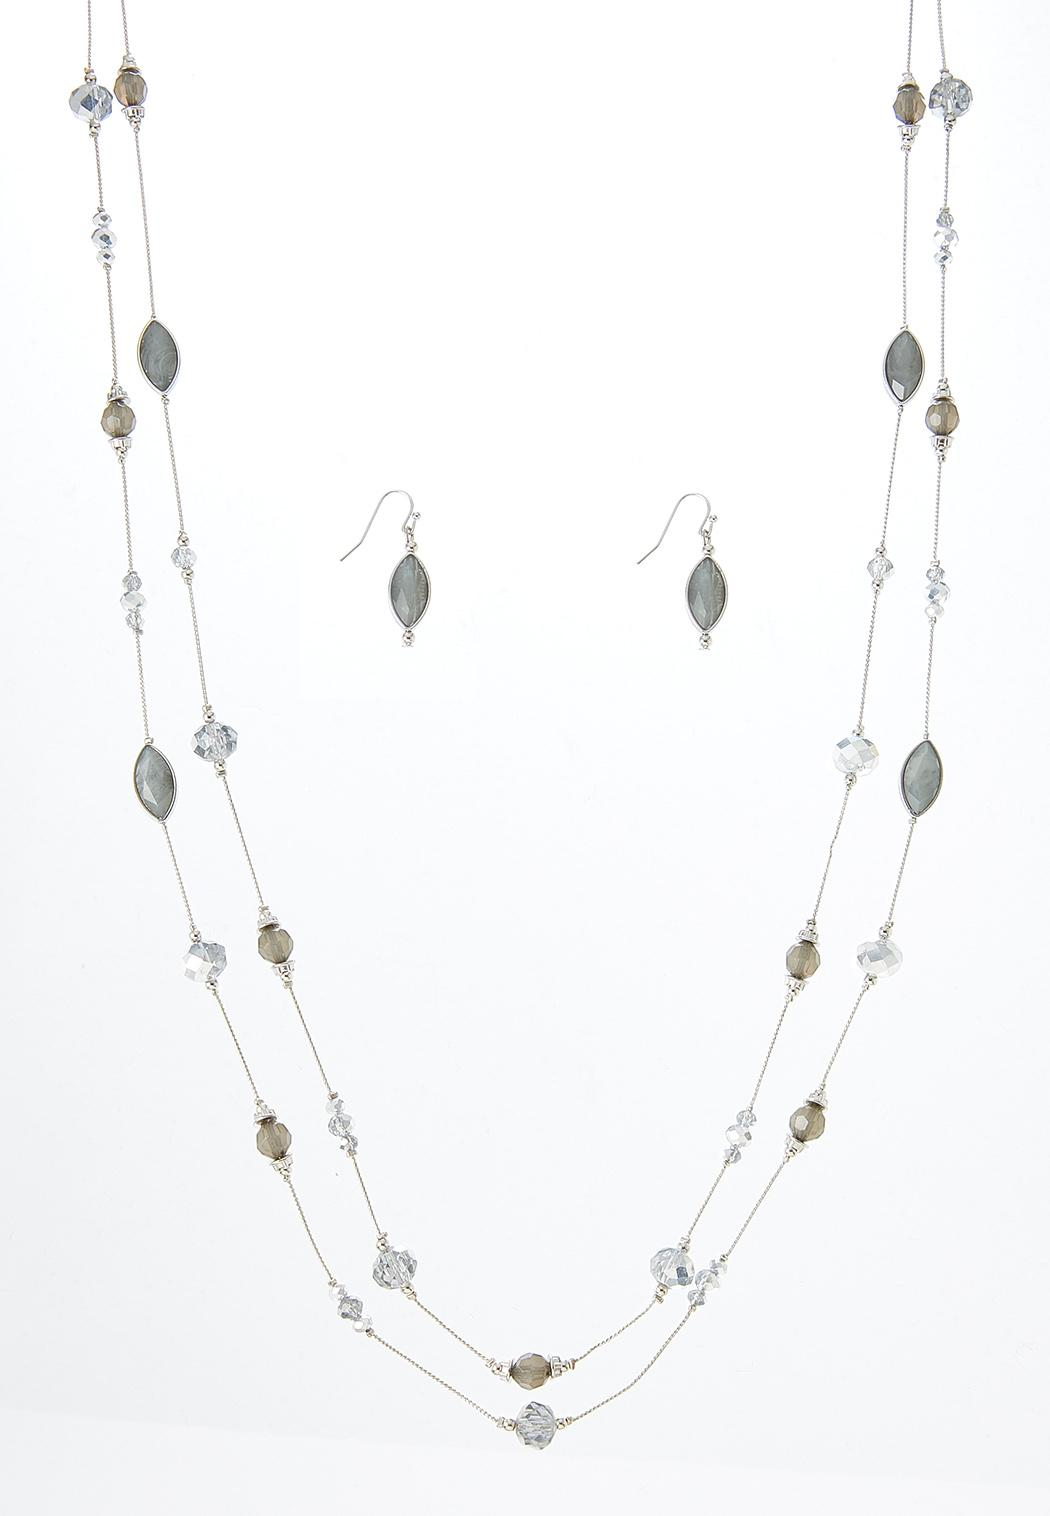 Delicate Bead Necklace Earring Set